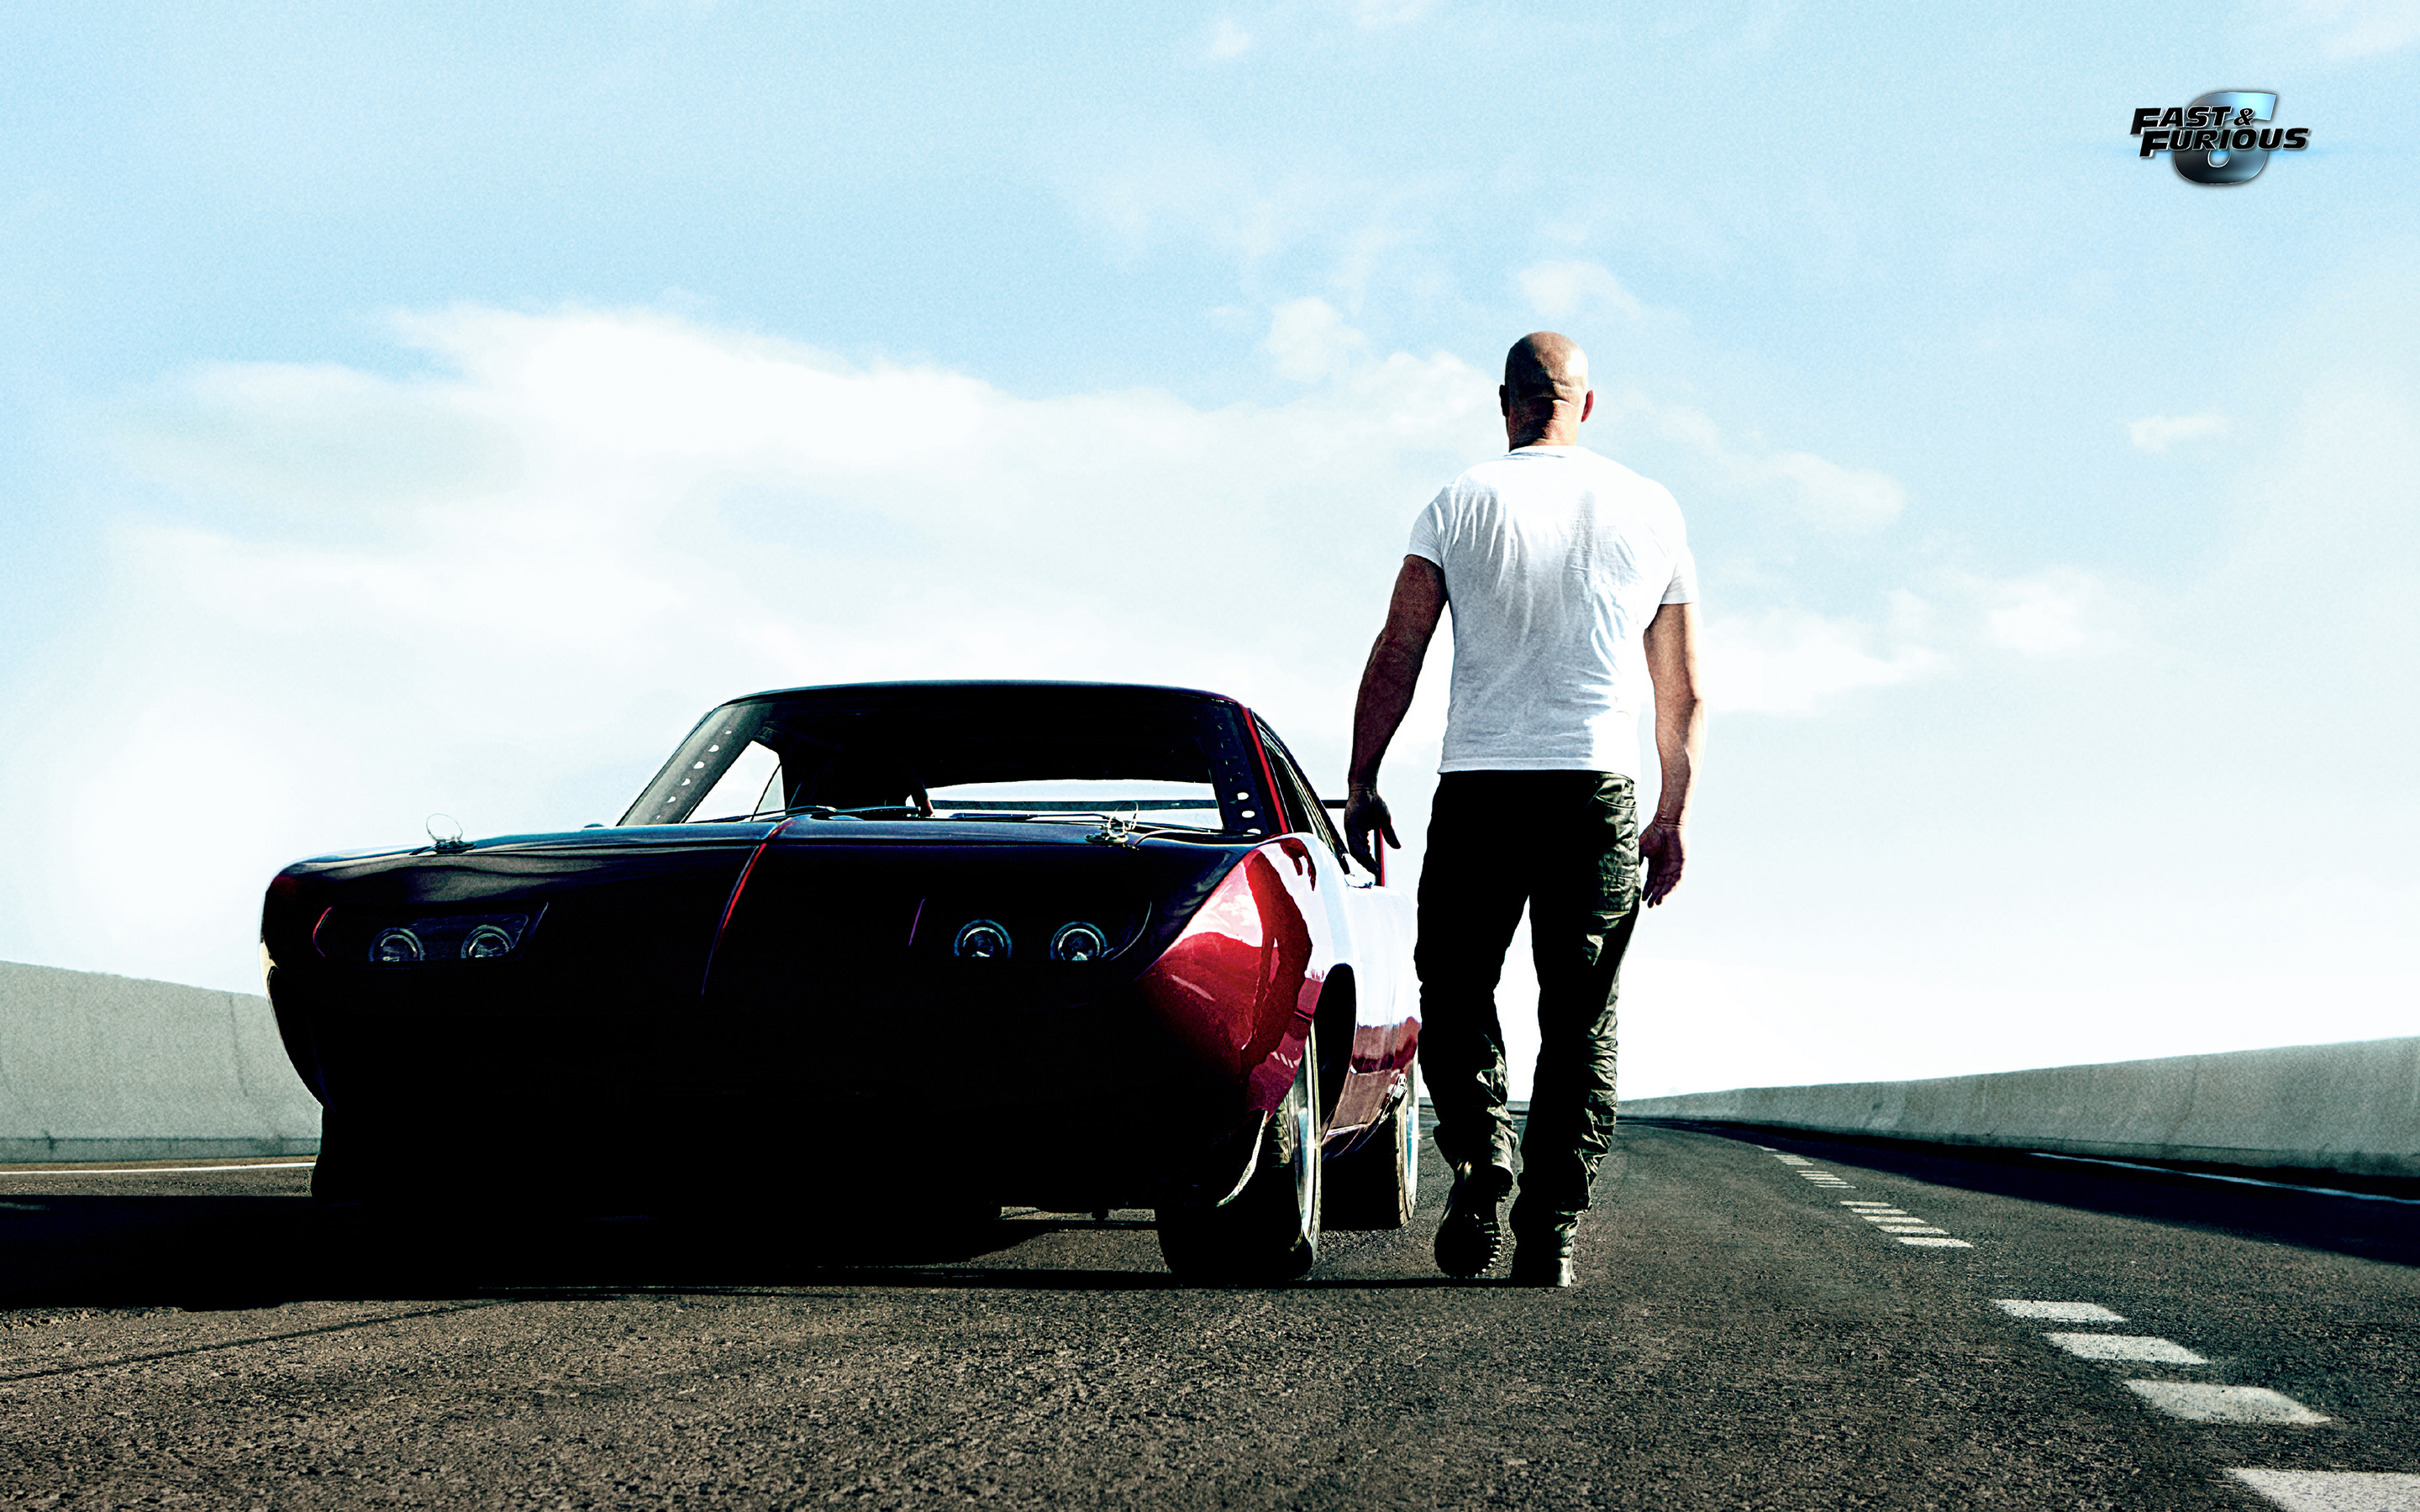 fast and furious 6 full movie download torrent